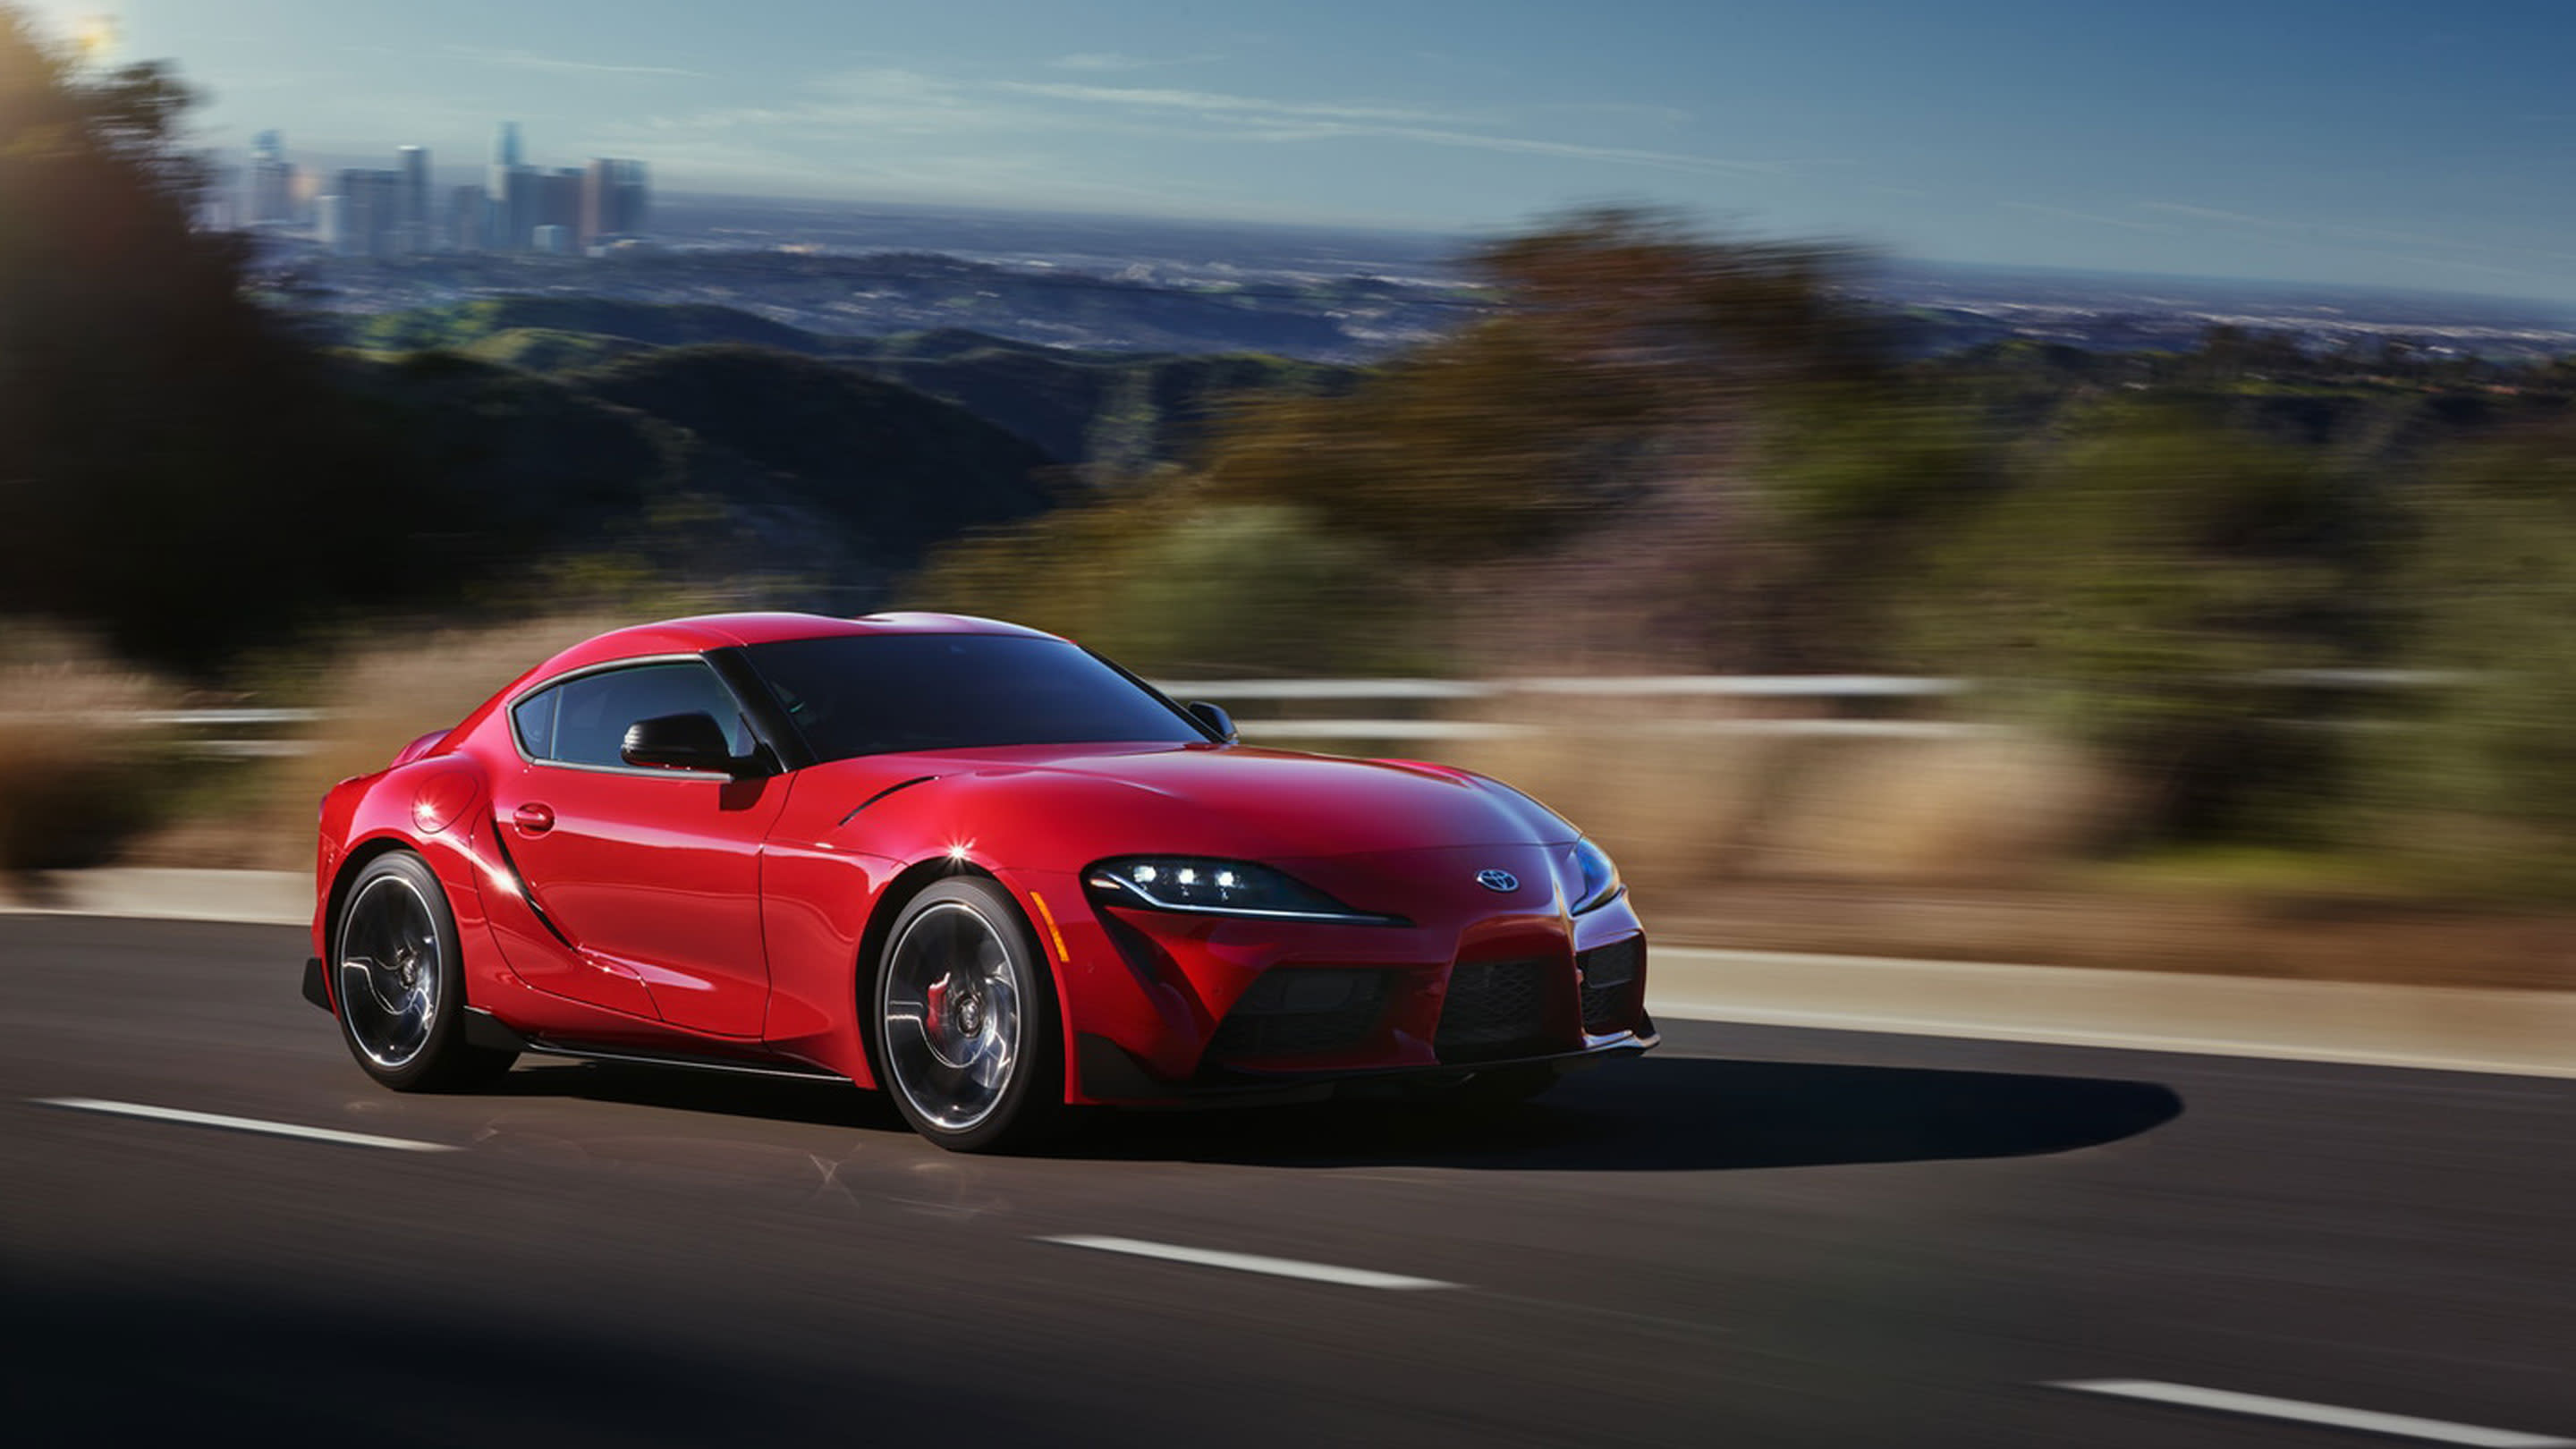 New Toyota Supra For Sale near Evansville, IN